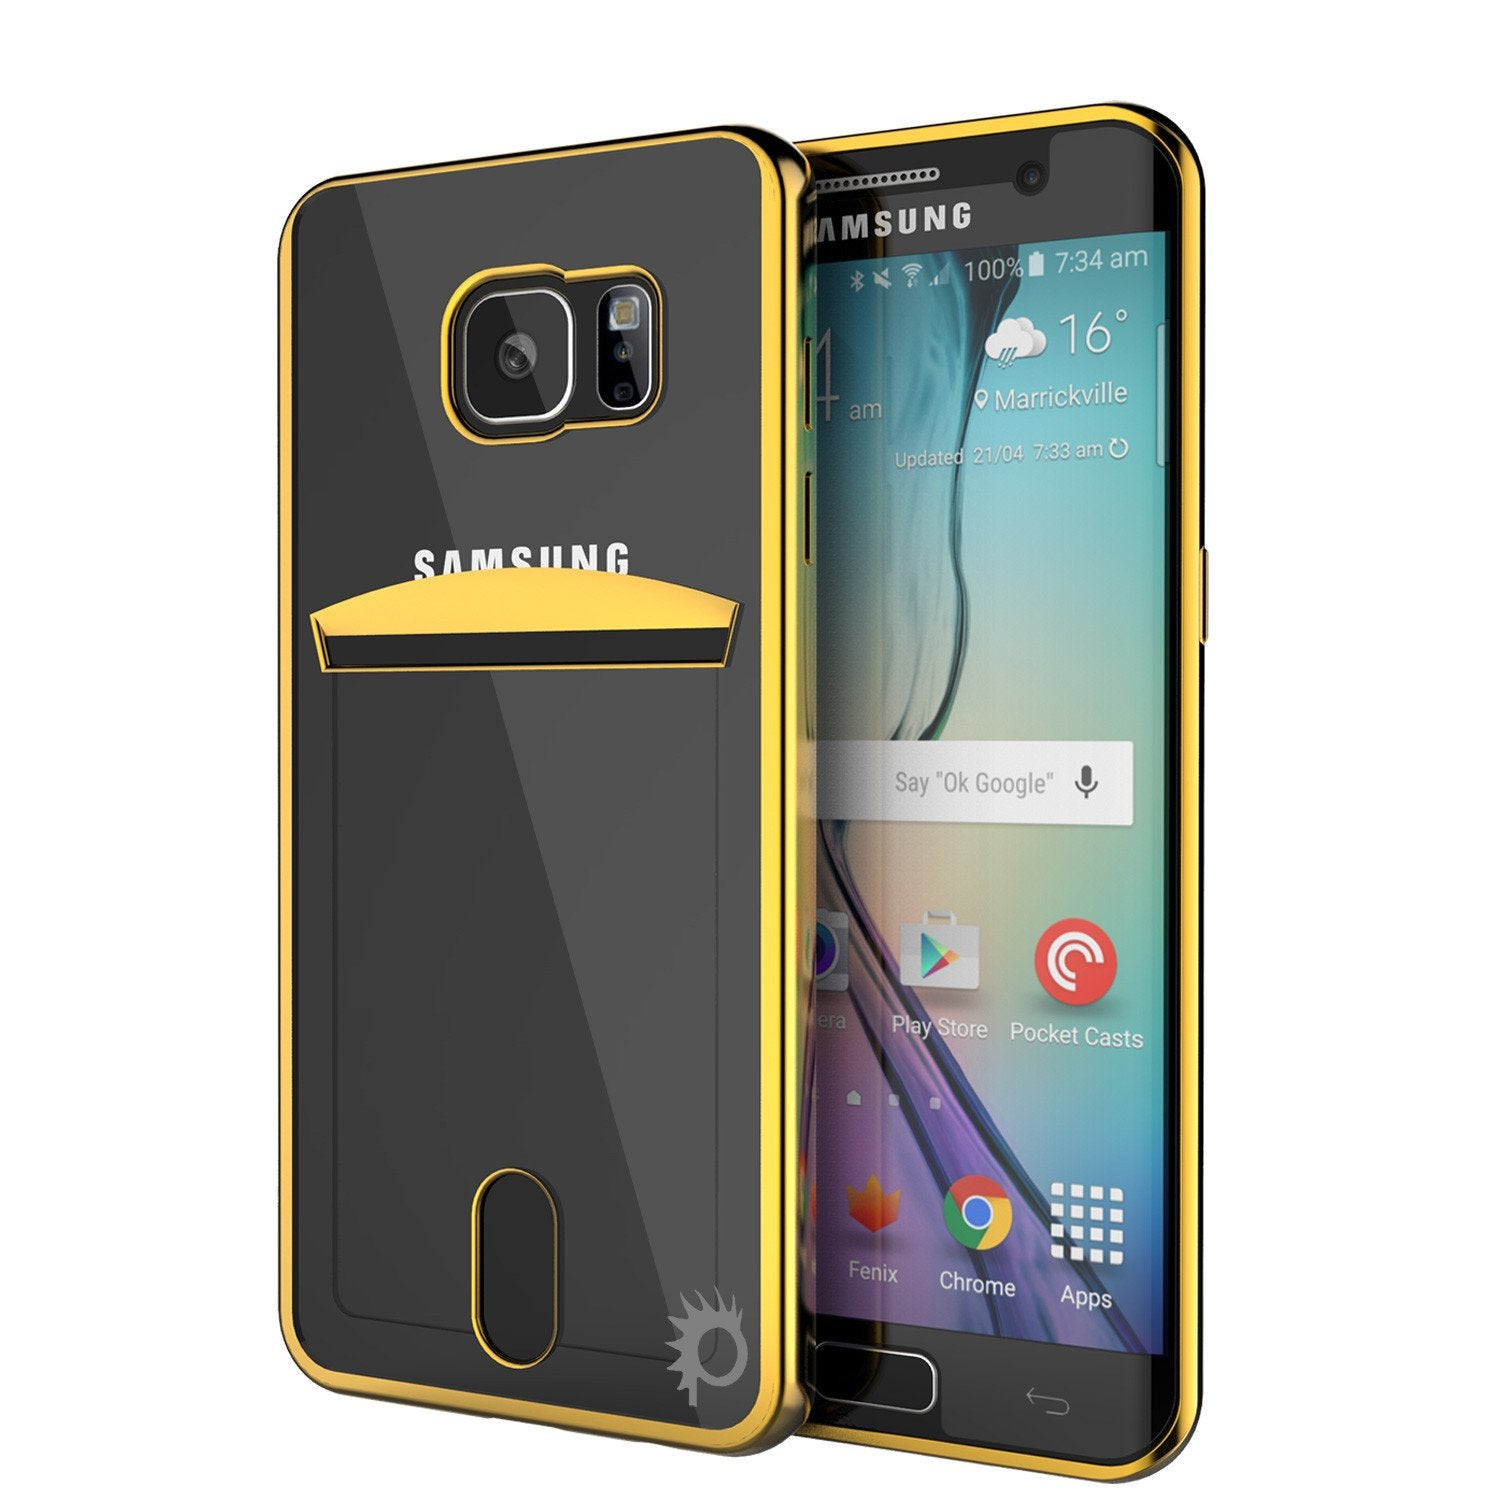 Galaxy S6 EDGE+ Plus Case, PUNKCASE® LUCID Gold Series | Card Slot | SHIELD Screen Protector - PunkCase NZ